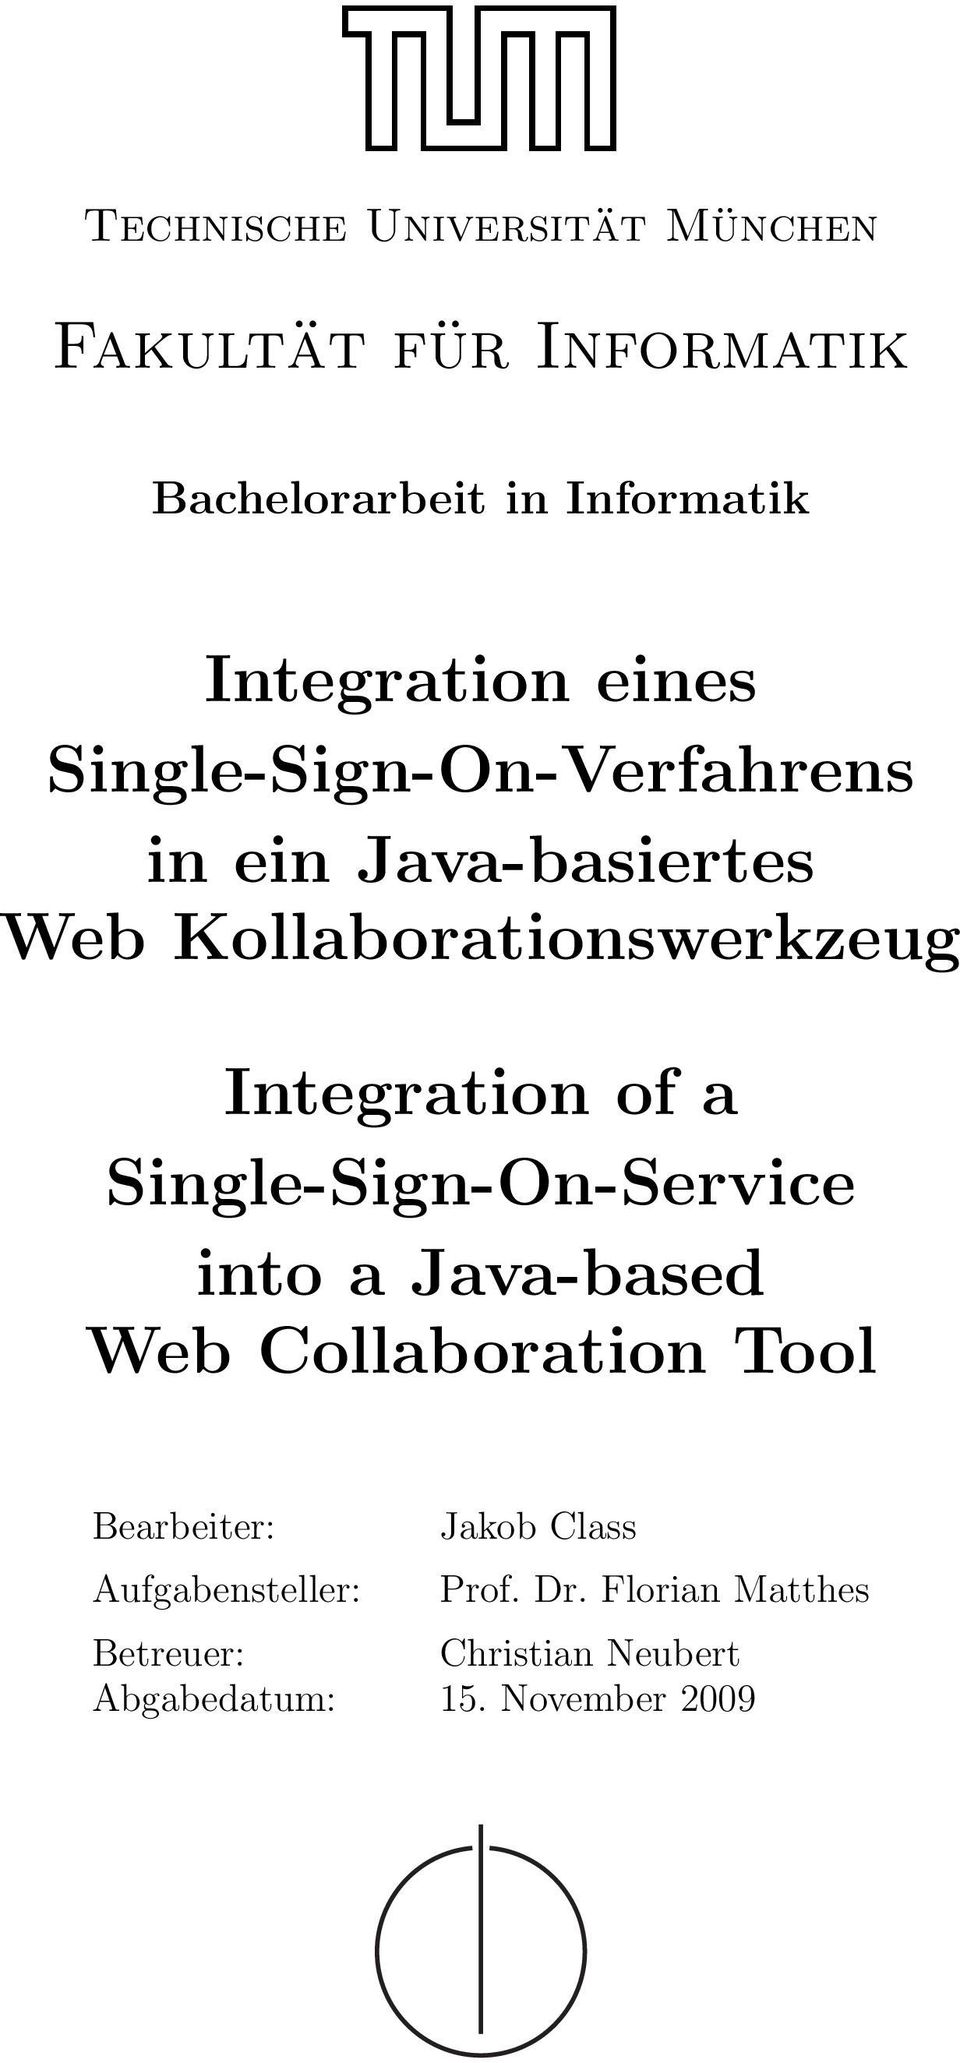 a Single-Sign-On-Service into a Java-based Web Collaboration Tool Bearbeiter: Jakob Class